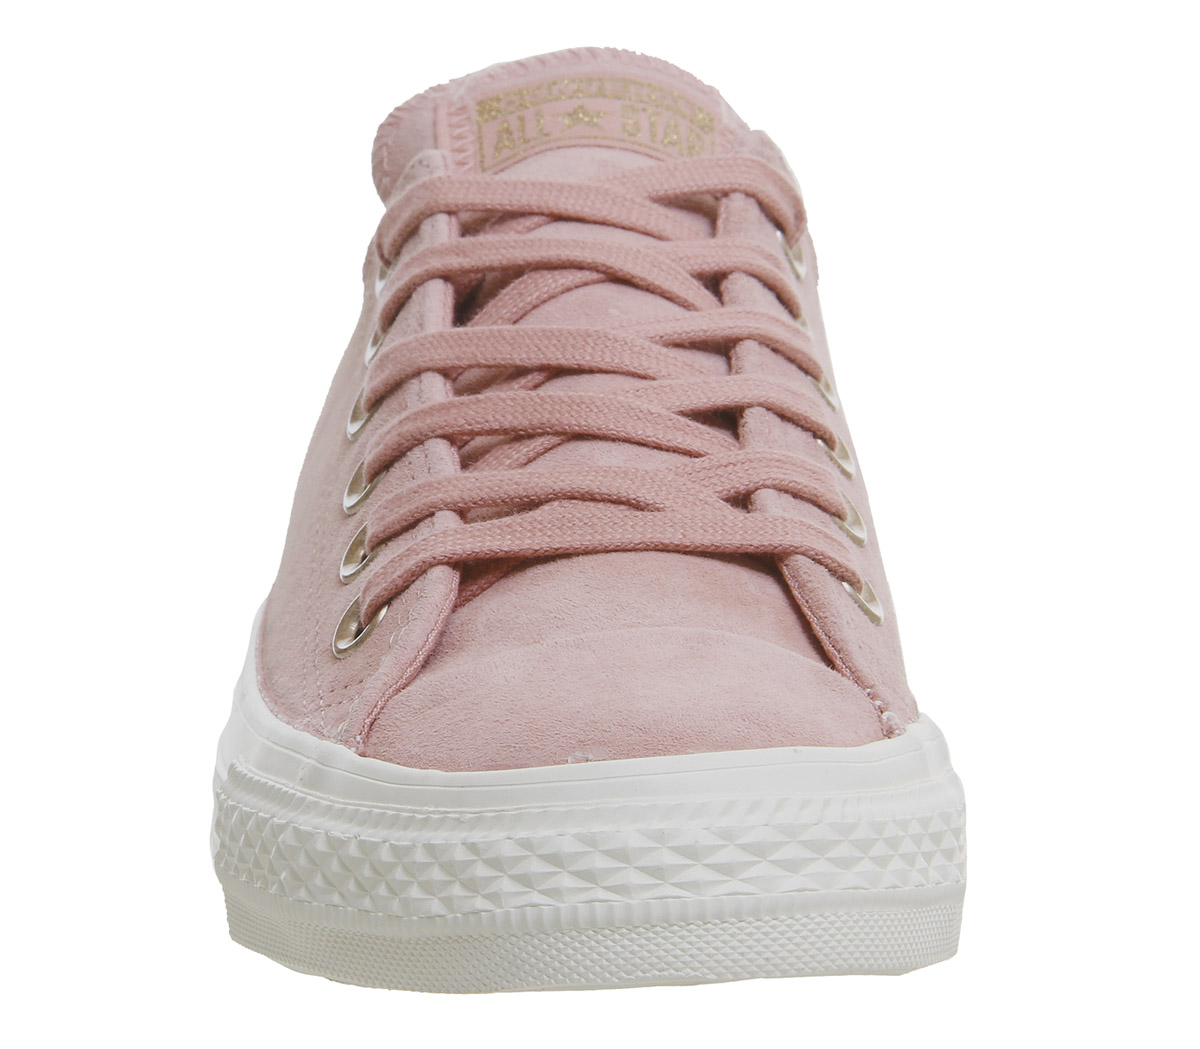 5b47494d727 Sentinel Womens Converse All Star Low Leather Trainers Rust Pink Mercury  Grey Metallic Ex